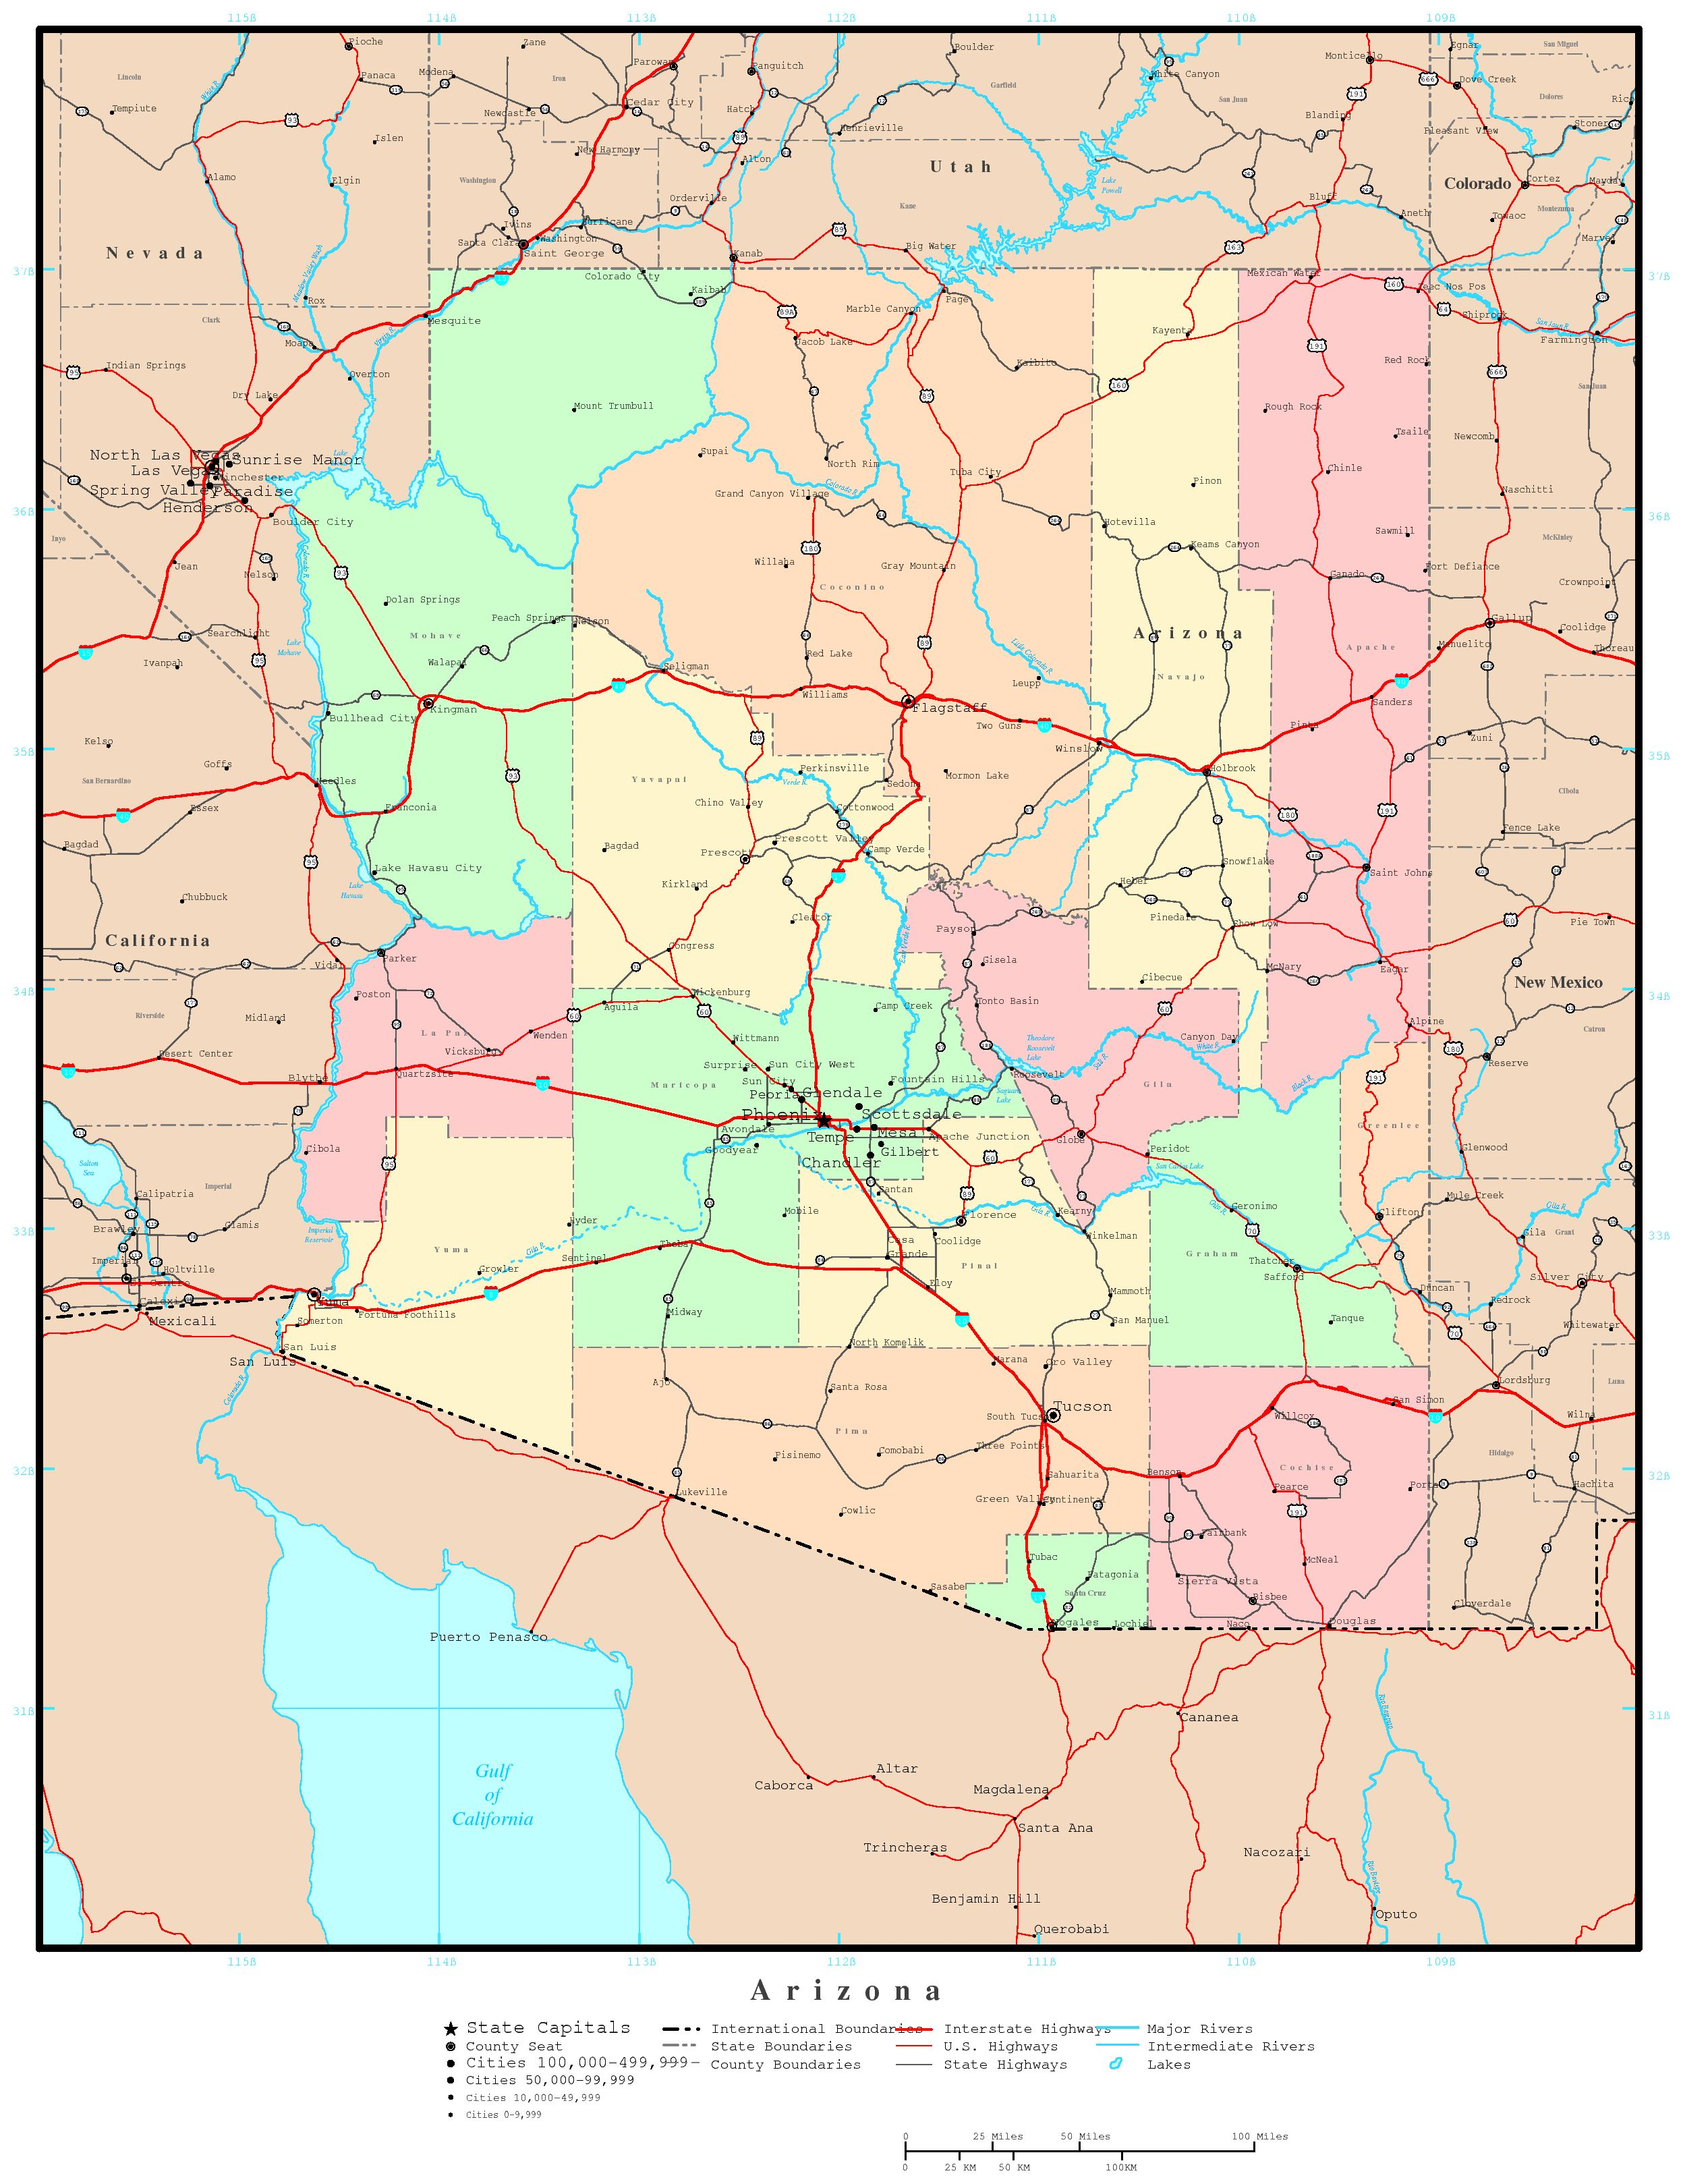 Arizona Political Map